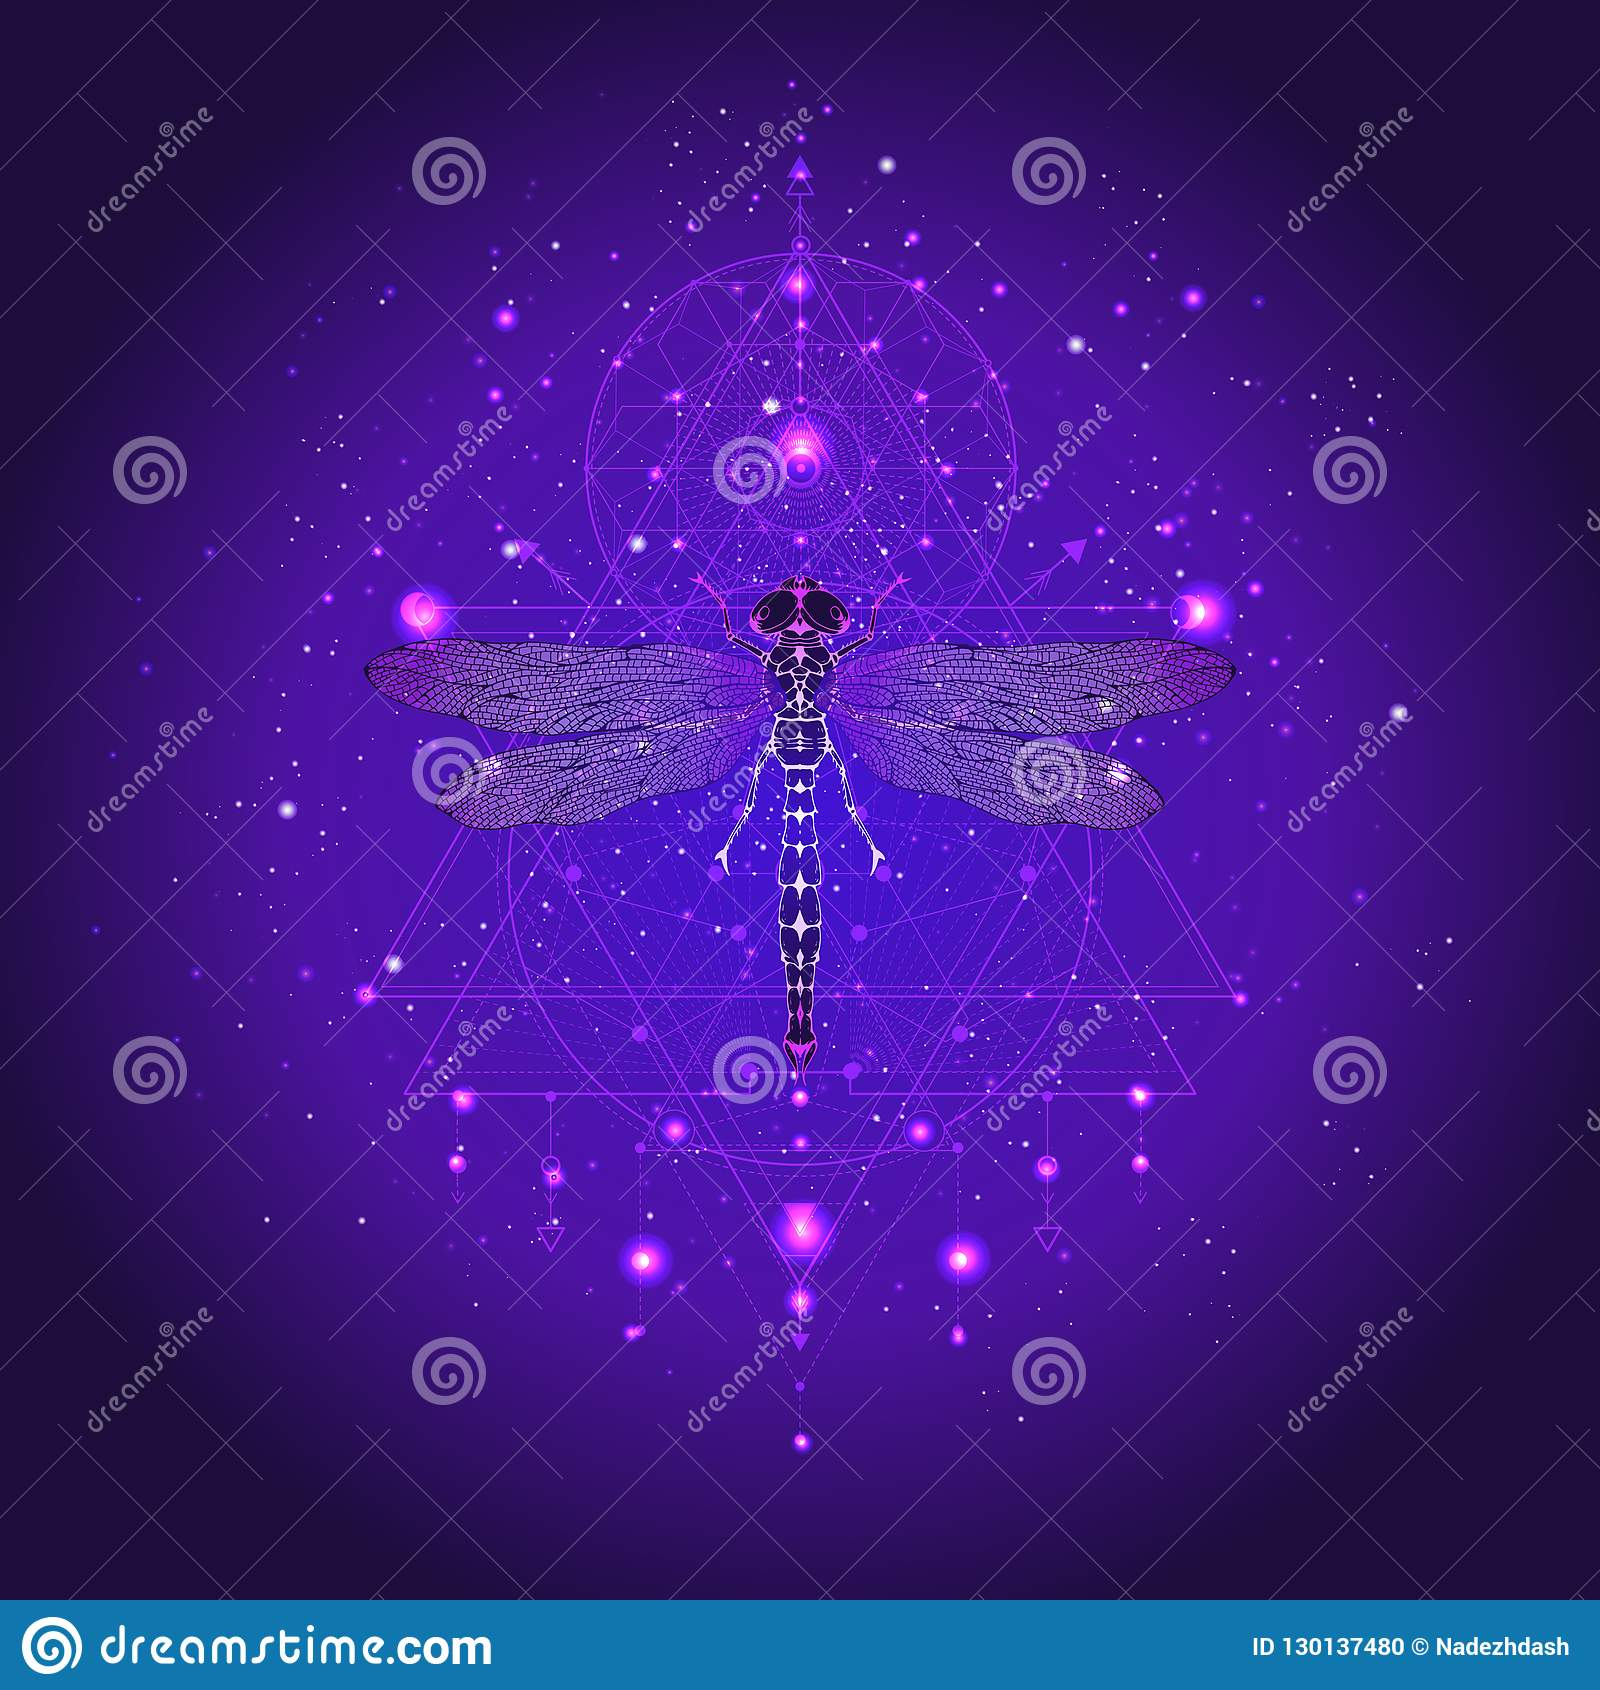 Vector Illustration With Hand Drawn Dragonfly And Sacred